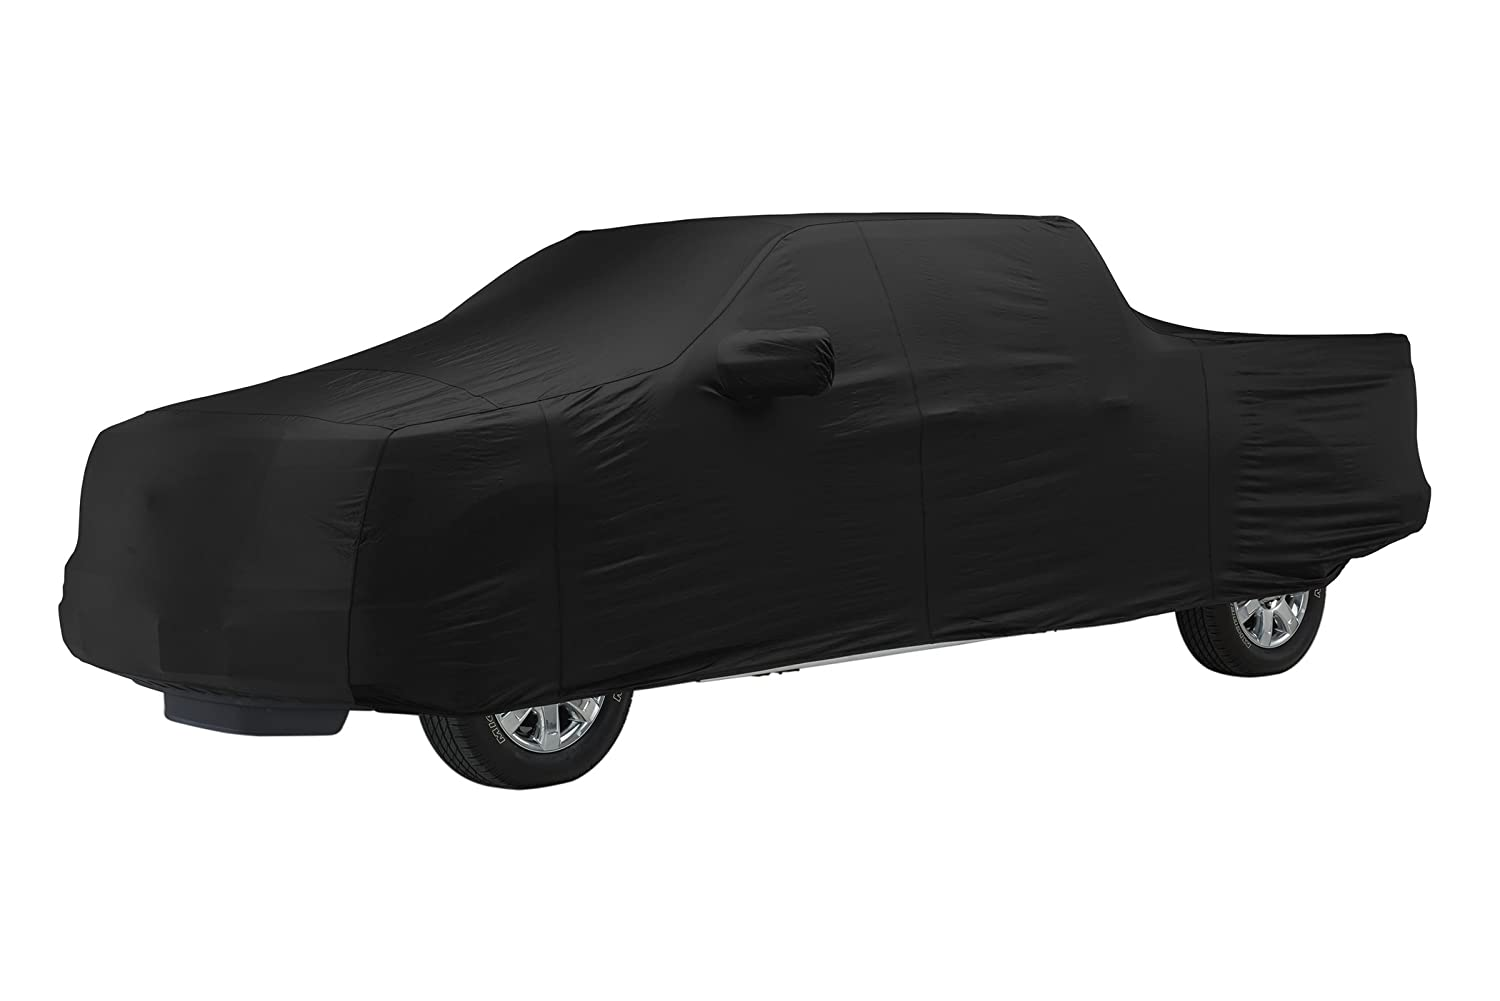 Covercraft Custom Fit Car Cover for Select Chevrolet//GMC Models FS18025F5 Fleeced Satin Black